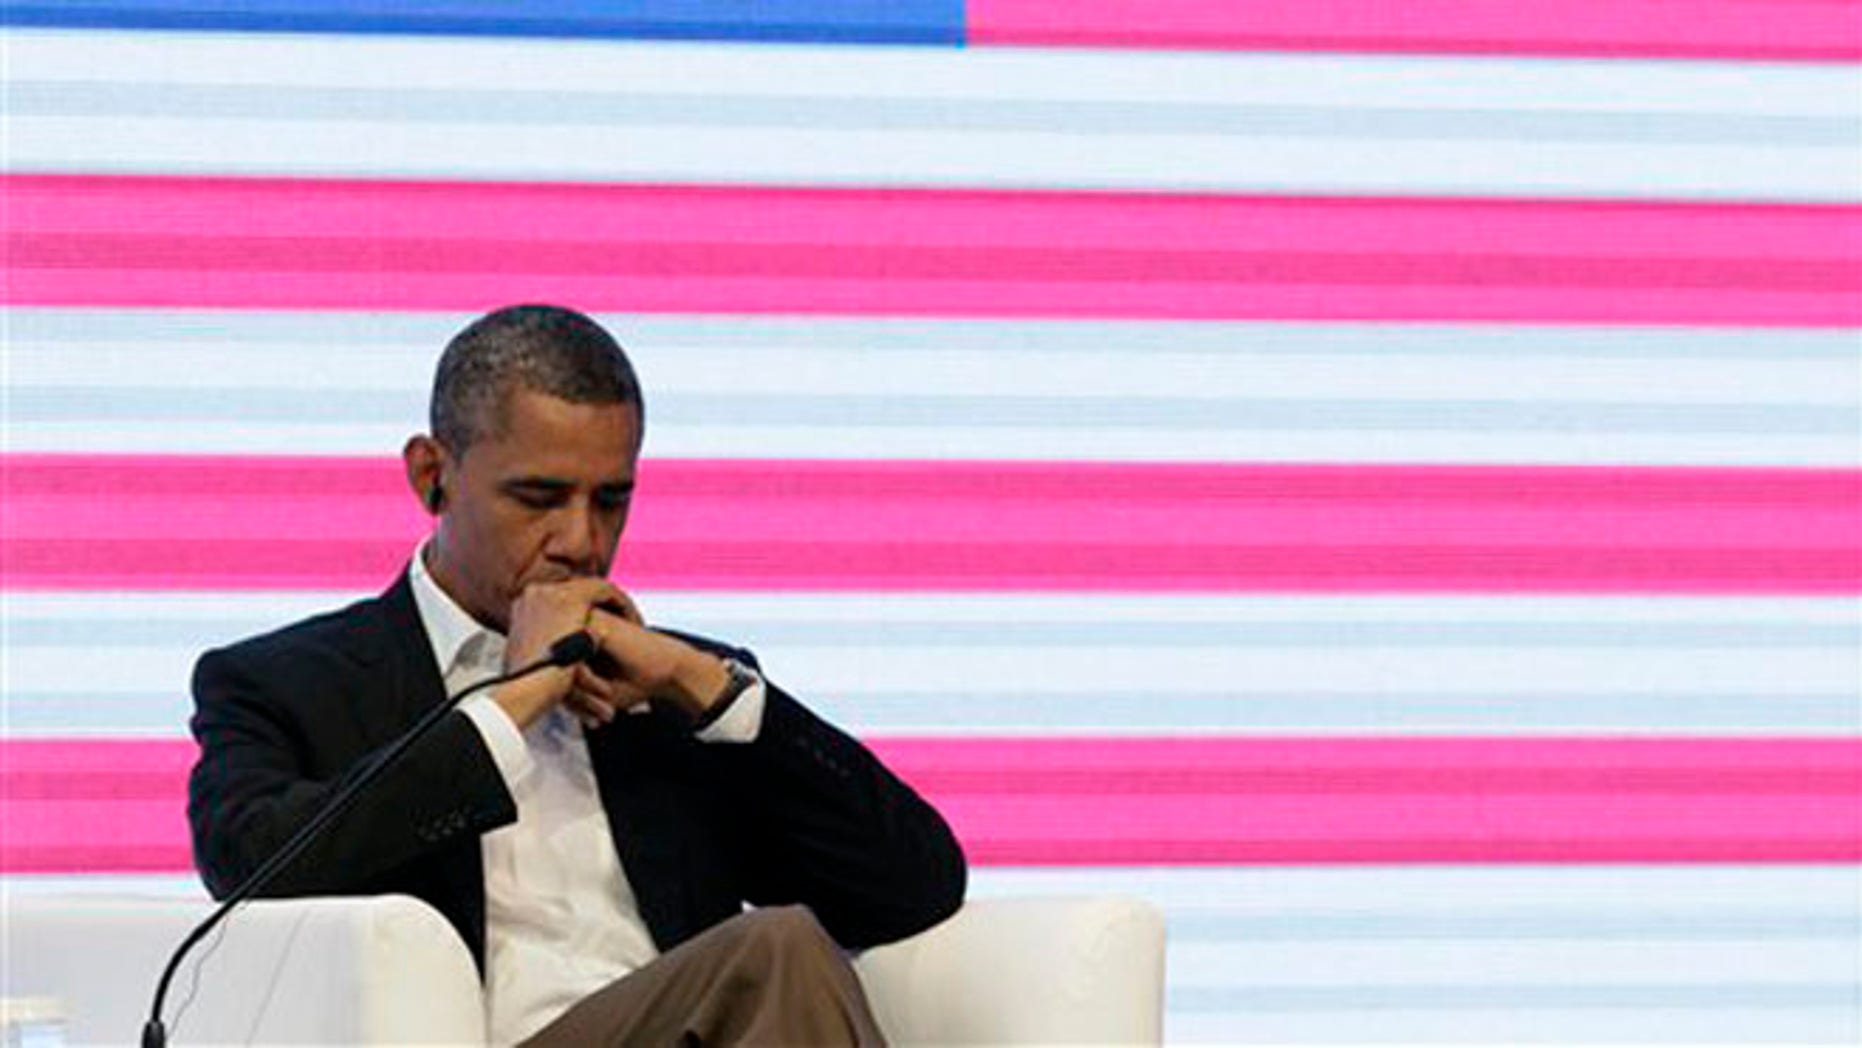 April 14, 2012: President Obama is shown at the CEO Summit of the Americas in Cartagena, Colombia.